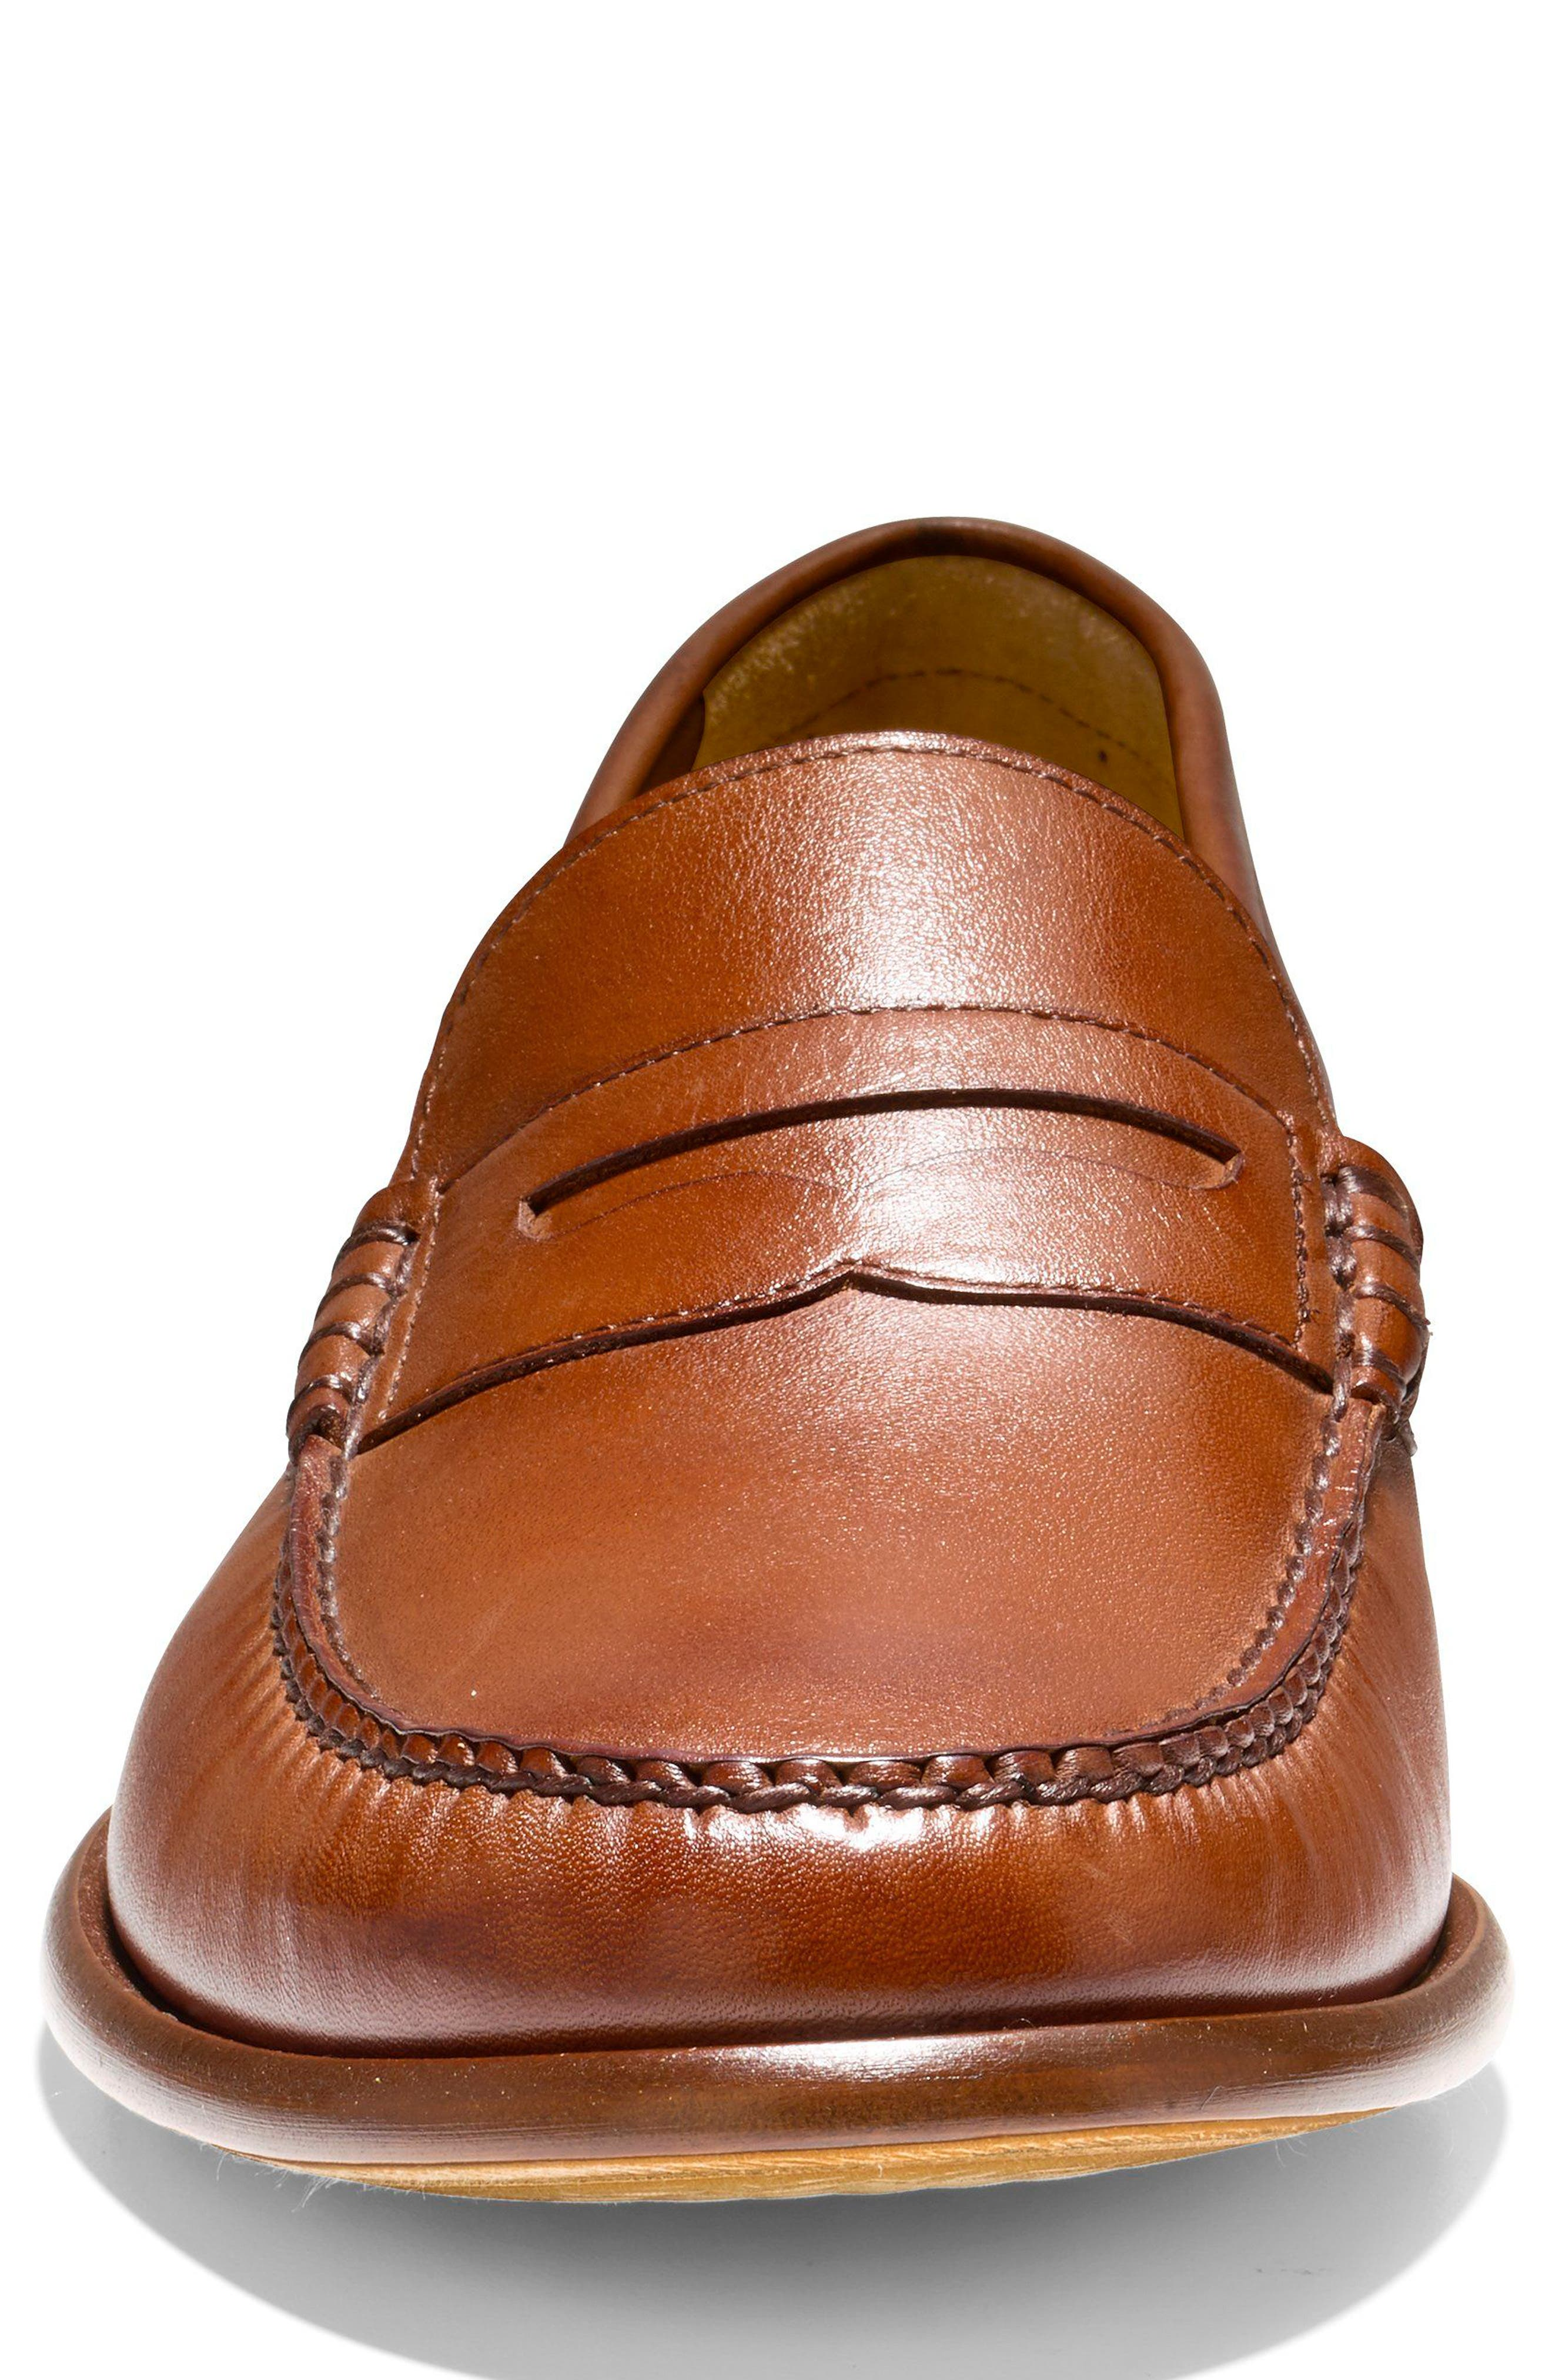 Pinch Penny Loafer,                             Alternate thumbnail 4, color,                             British Tan Leather